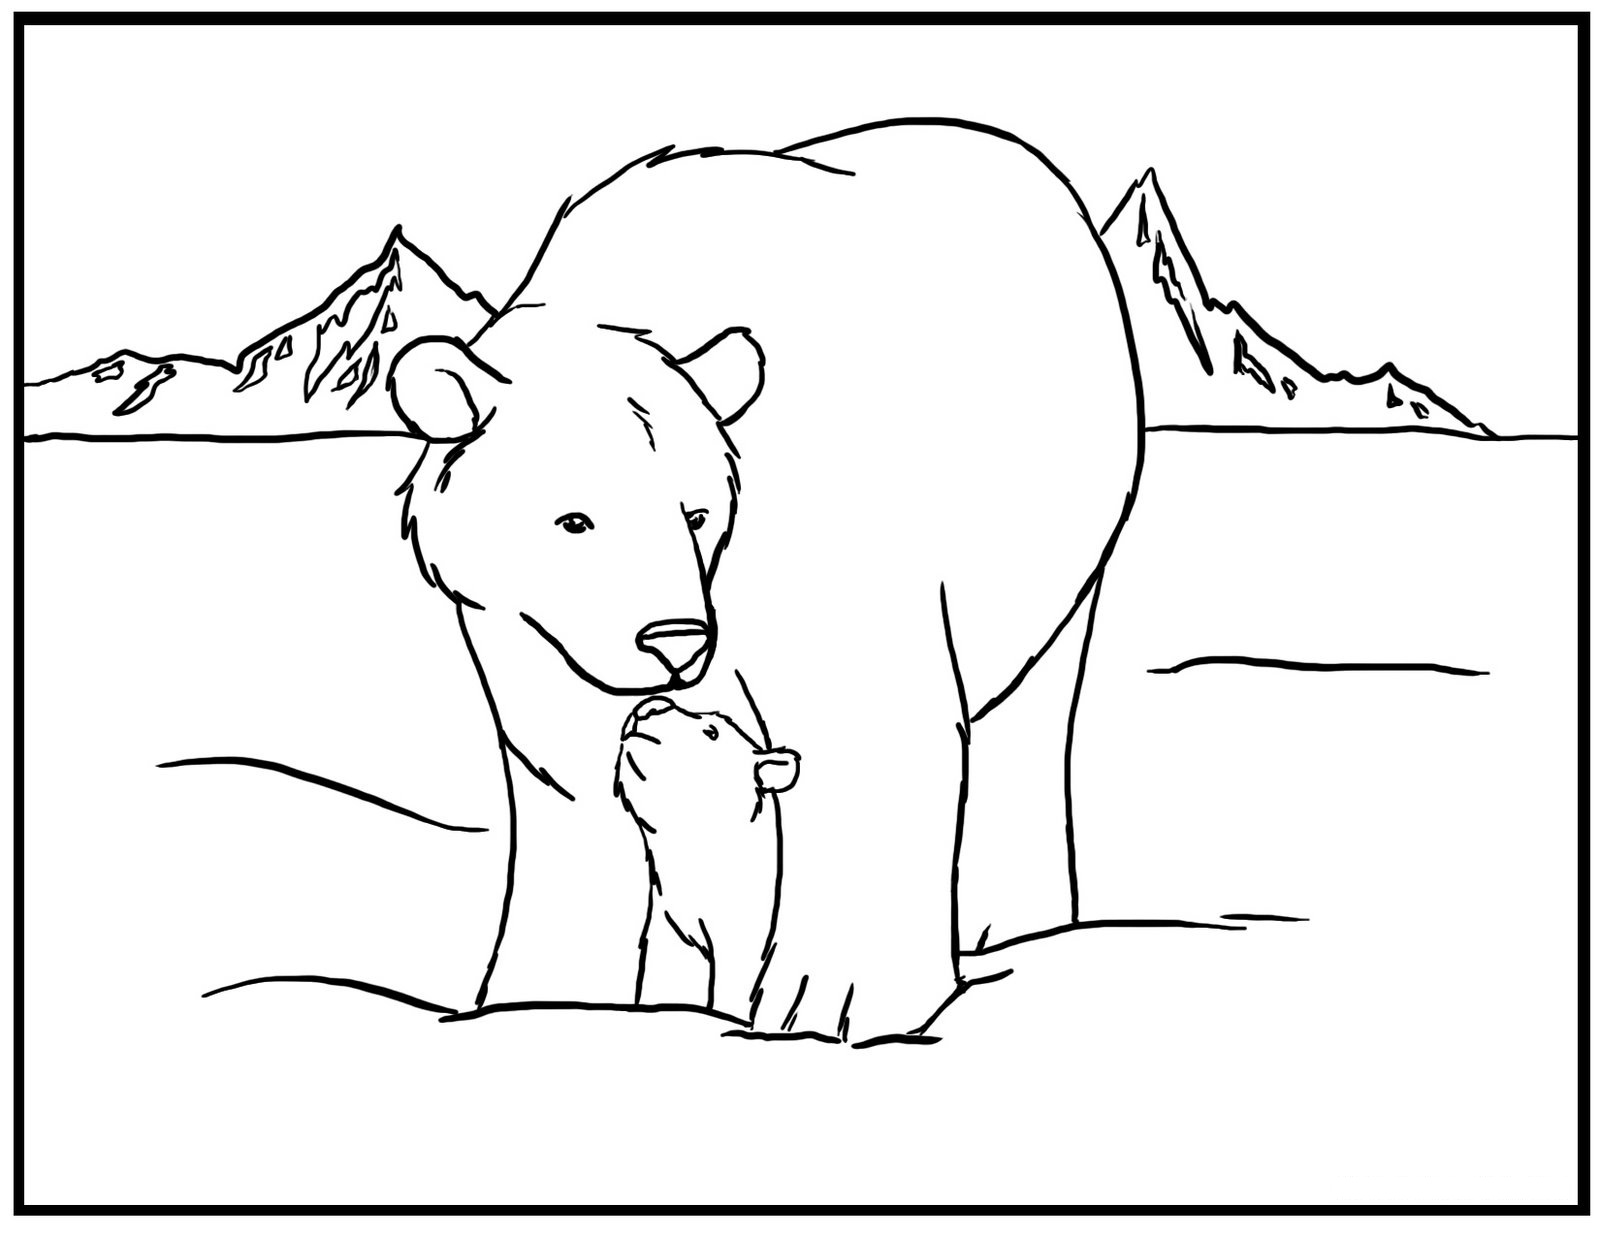 polar bear coloring pages preschool - photo#24